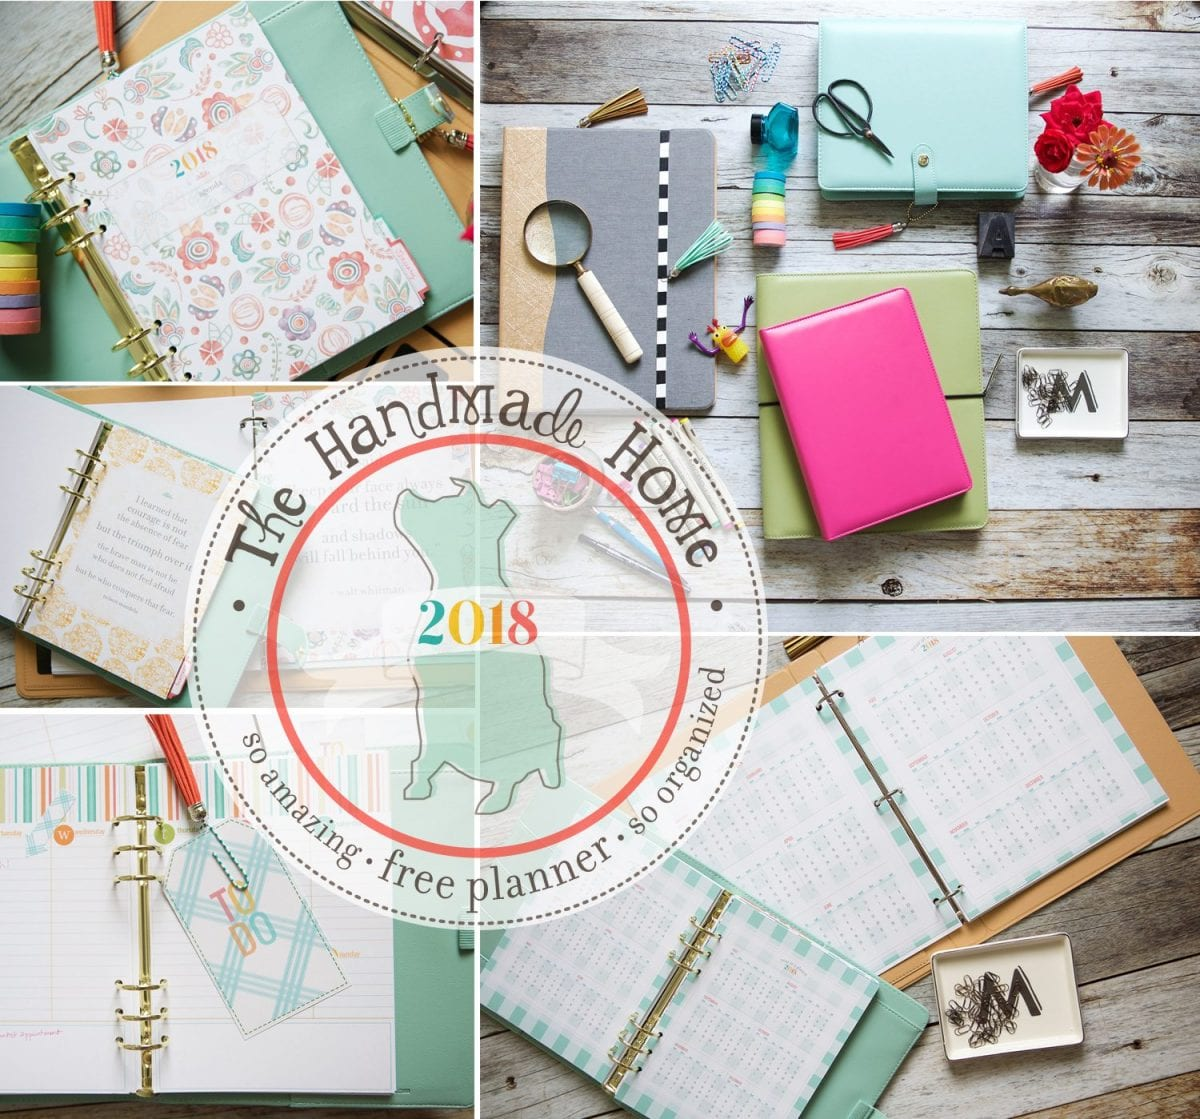 Free Planner - Over 200 Customizable Files - The Handmade Home on online college class schedule template, online business, online student, online party, online family, online broker, online travel, online services, online wallet, online calculator, online flowers, online buyer, online teacher, online notepad, online registration,